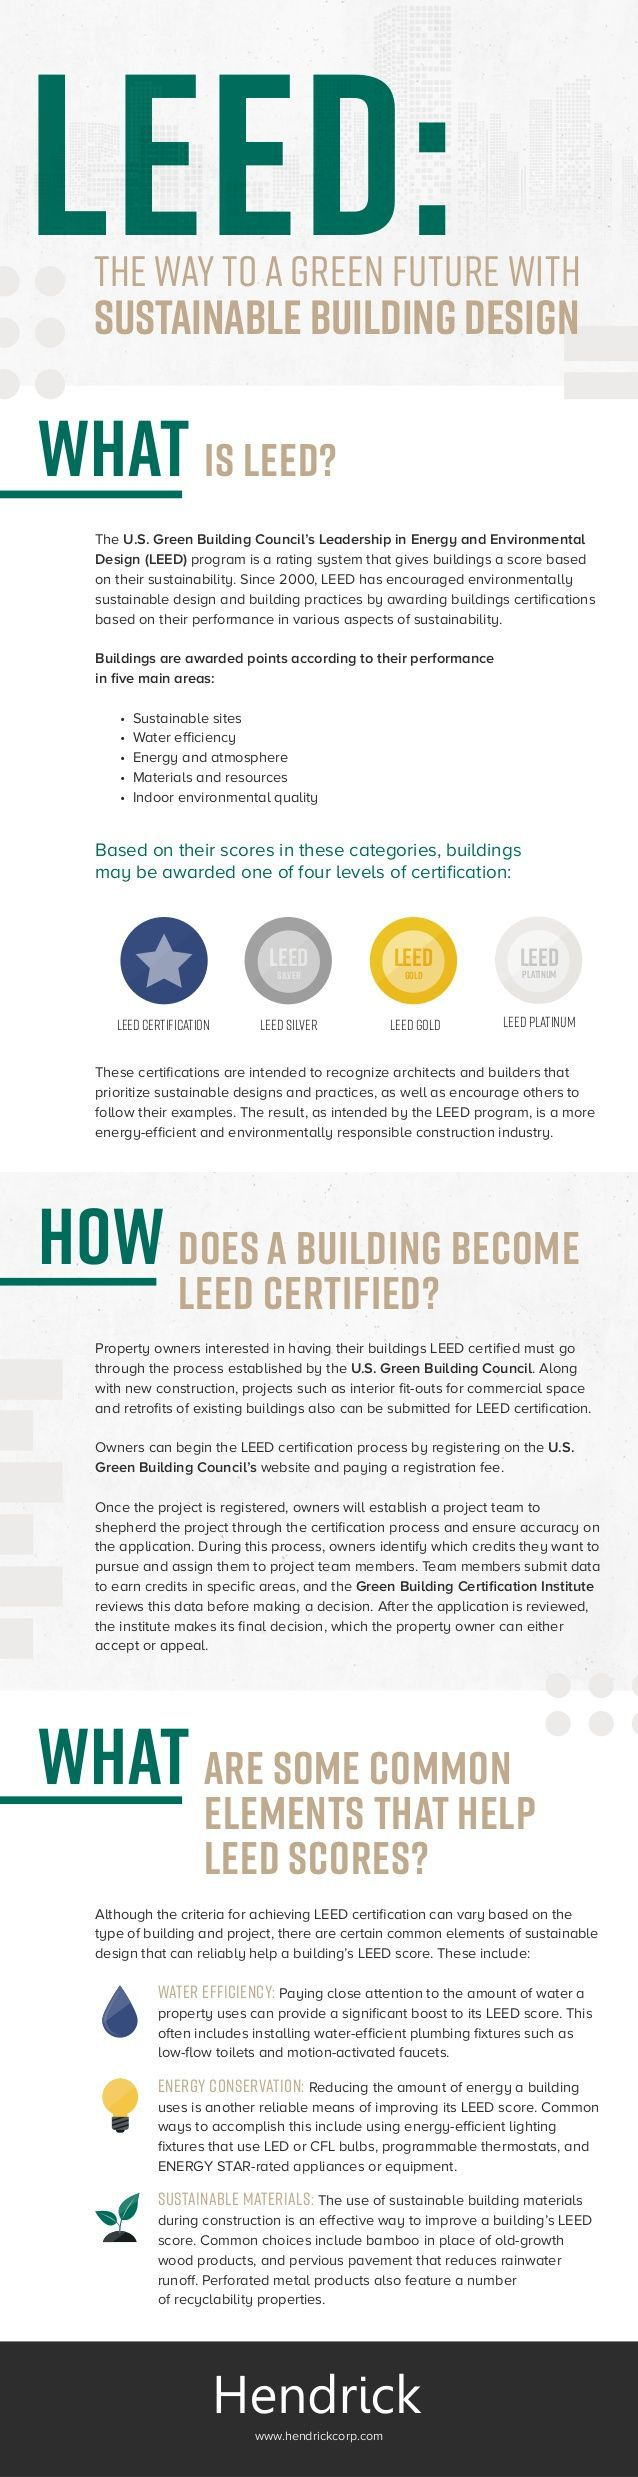 lead the way to a sustainble future with sustainable building design